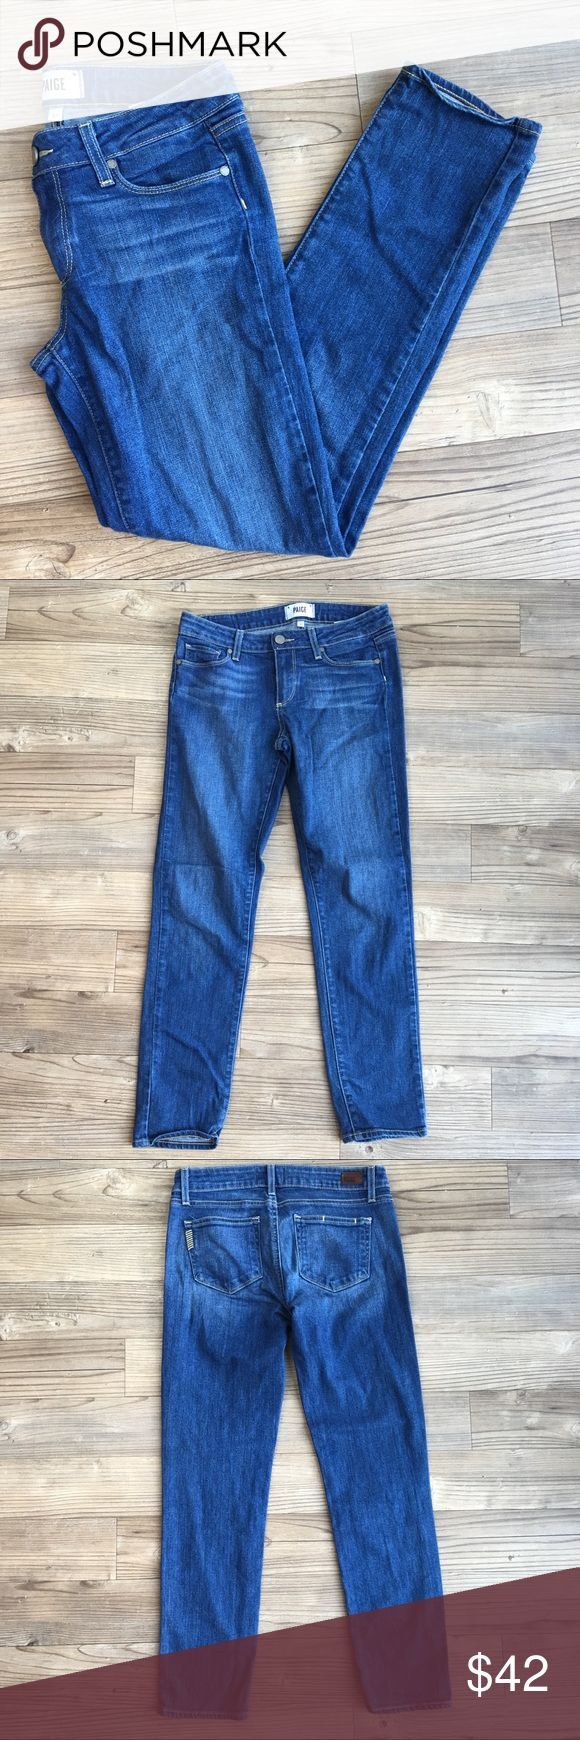 """Paige Premium Denim Jeans Skyline Ankle Peg Style Pre-owned Women's Paige Premium Denim Jeans Skyline Ankle Peg Style Dark Wash Size 27 29"""" Inseam Low Rise 8"""" Waist Flat 16"""" Ankle Flat 6"""" Angelina Style # WJ352 No stains or holes Non-smoking home PAIGE Jeans Skinny"""